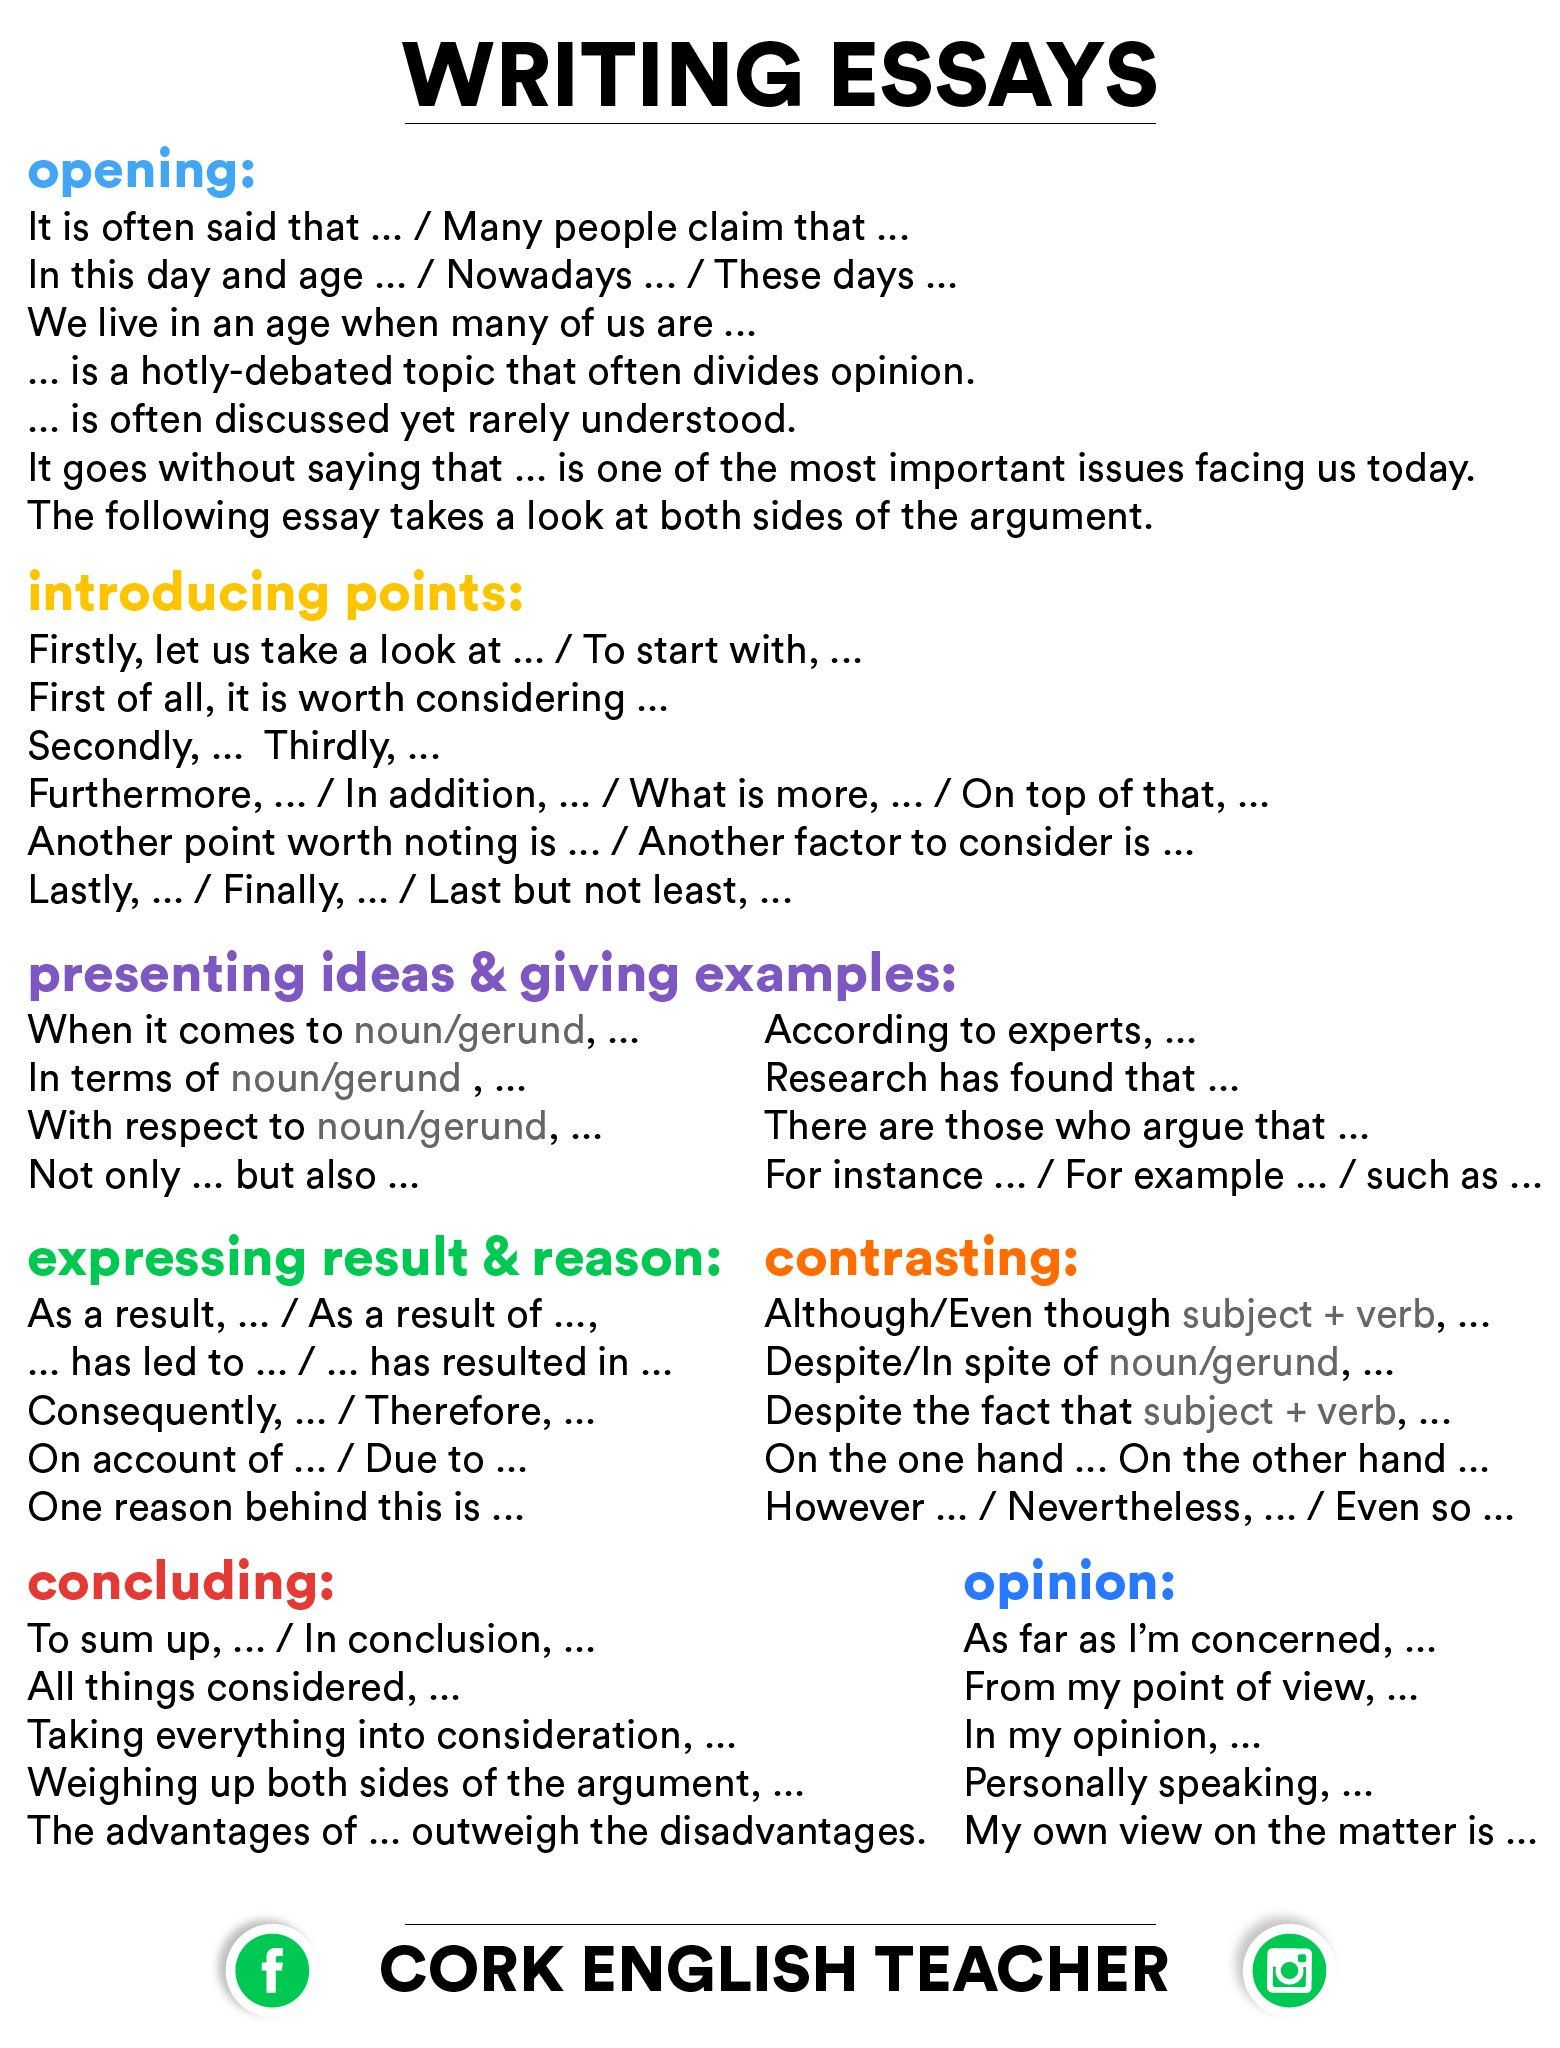 Related Image Essay Writing Skills Writing Expressions Essay Writing Tips